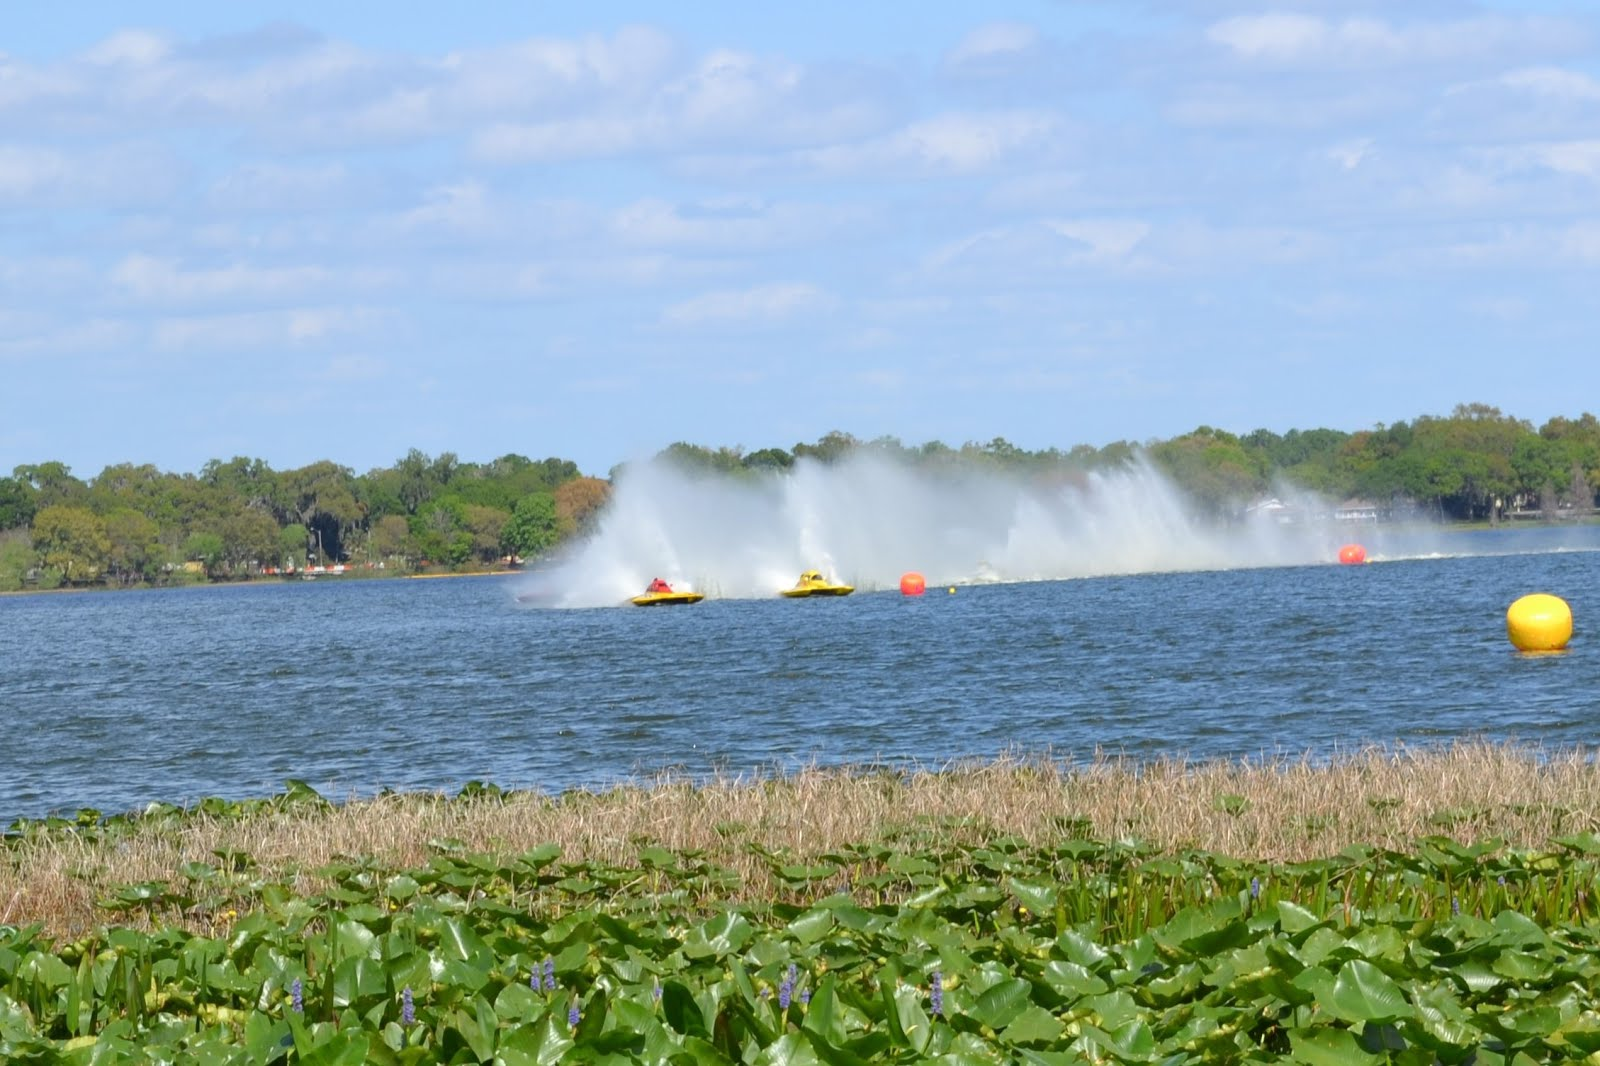 Lake Hollingsworth Boat Races